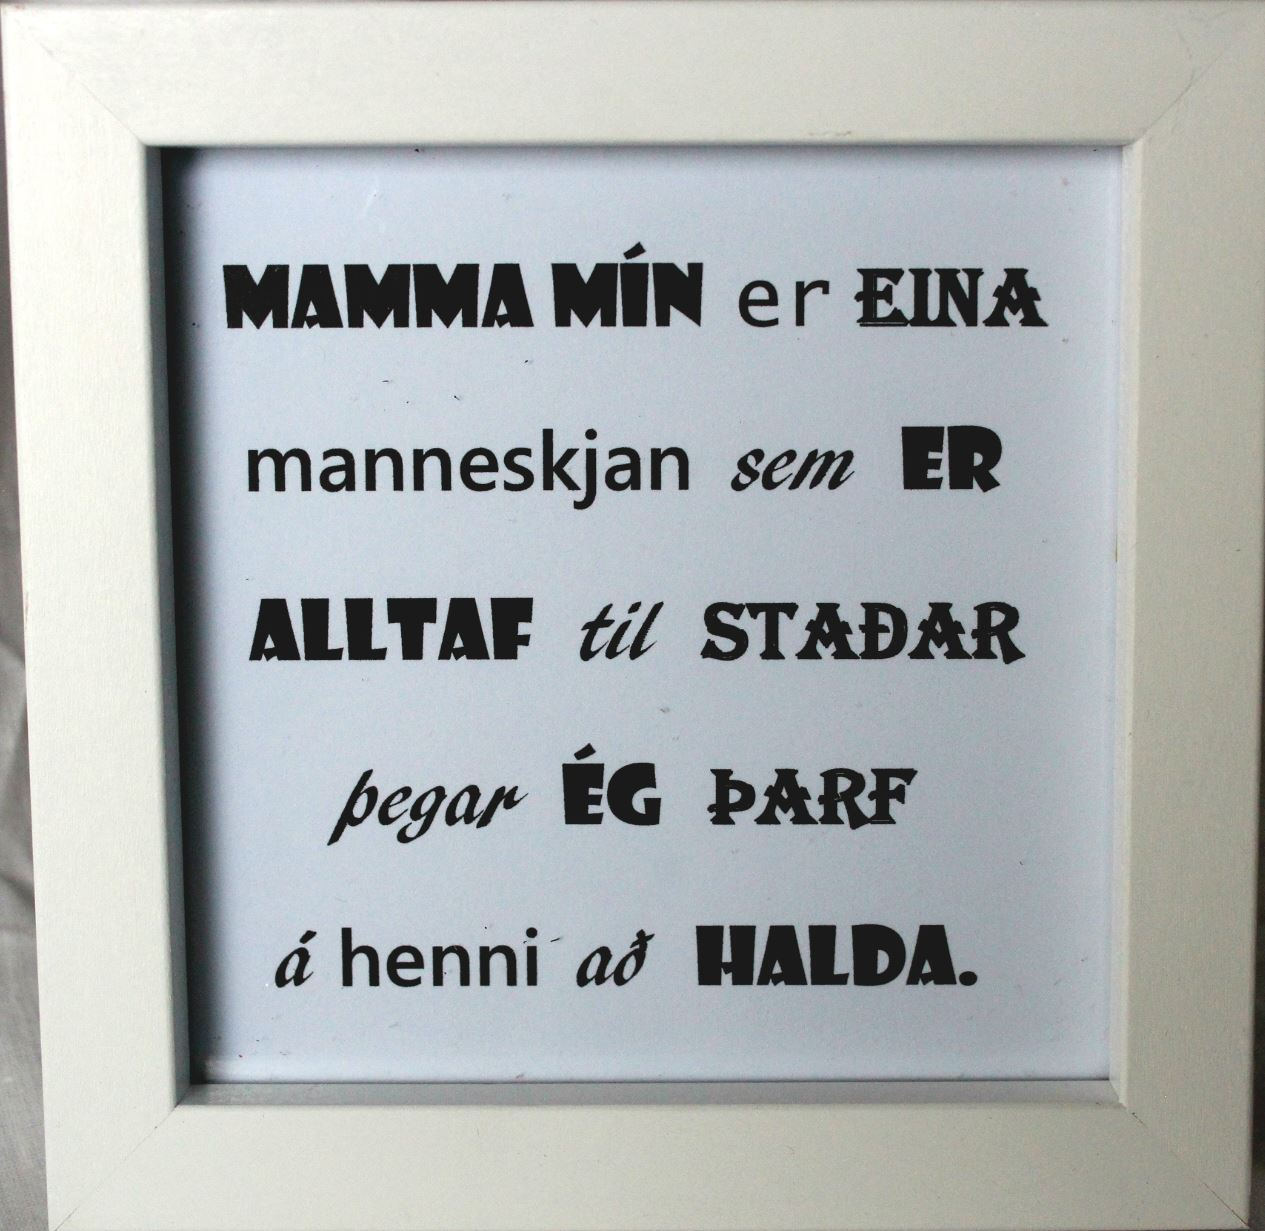 Beautiful quotes in picture frames - Mom 2 | Í Húsi Blóma Flower ...